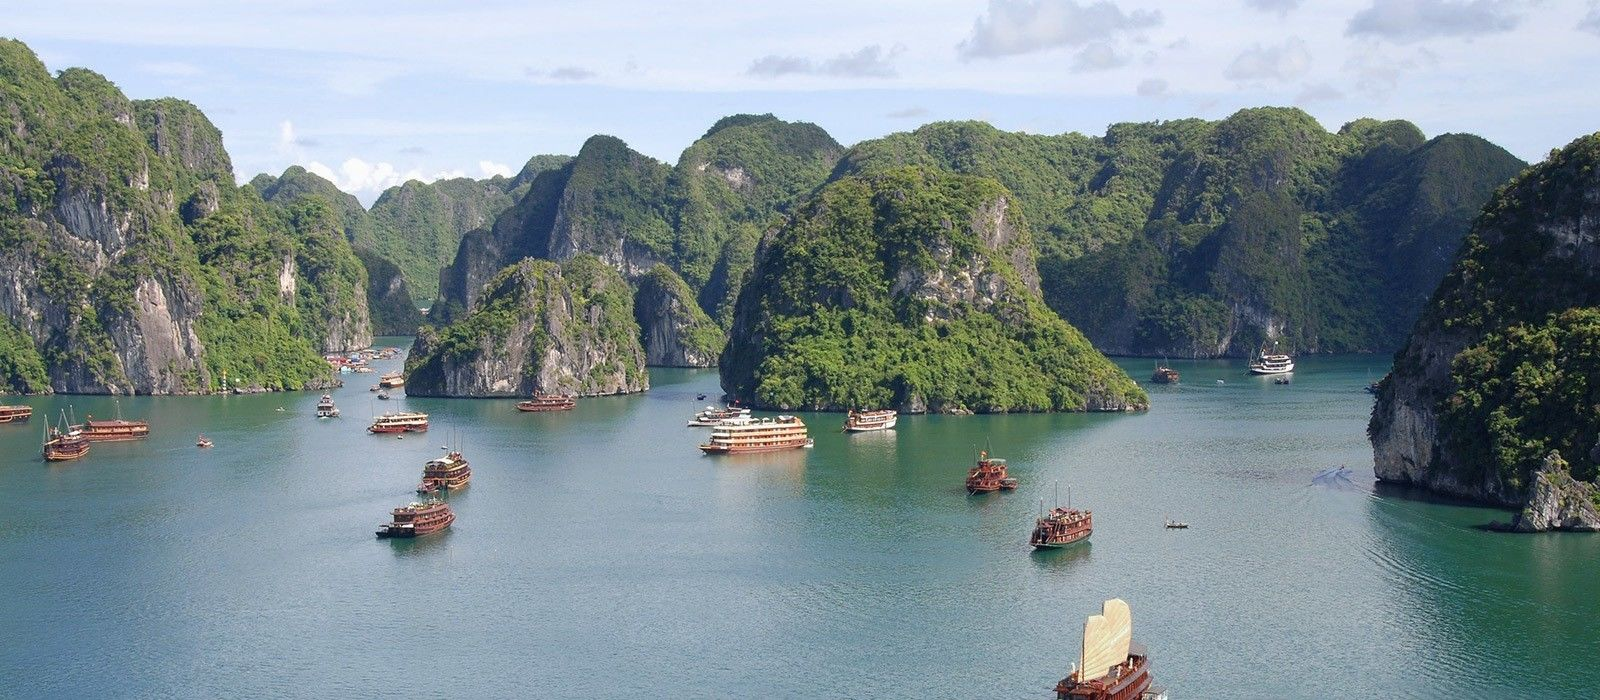 Destination Halong Bay Vietnam